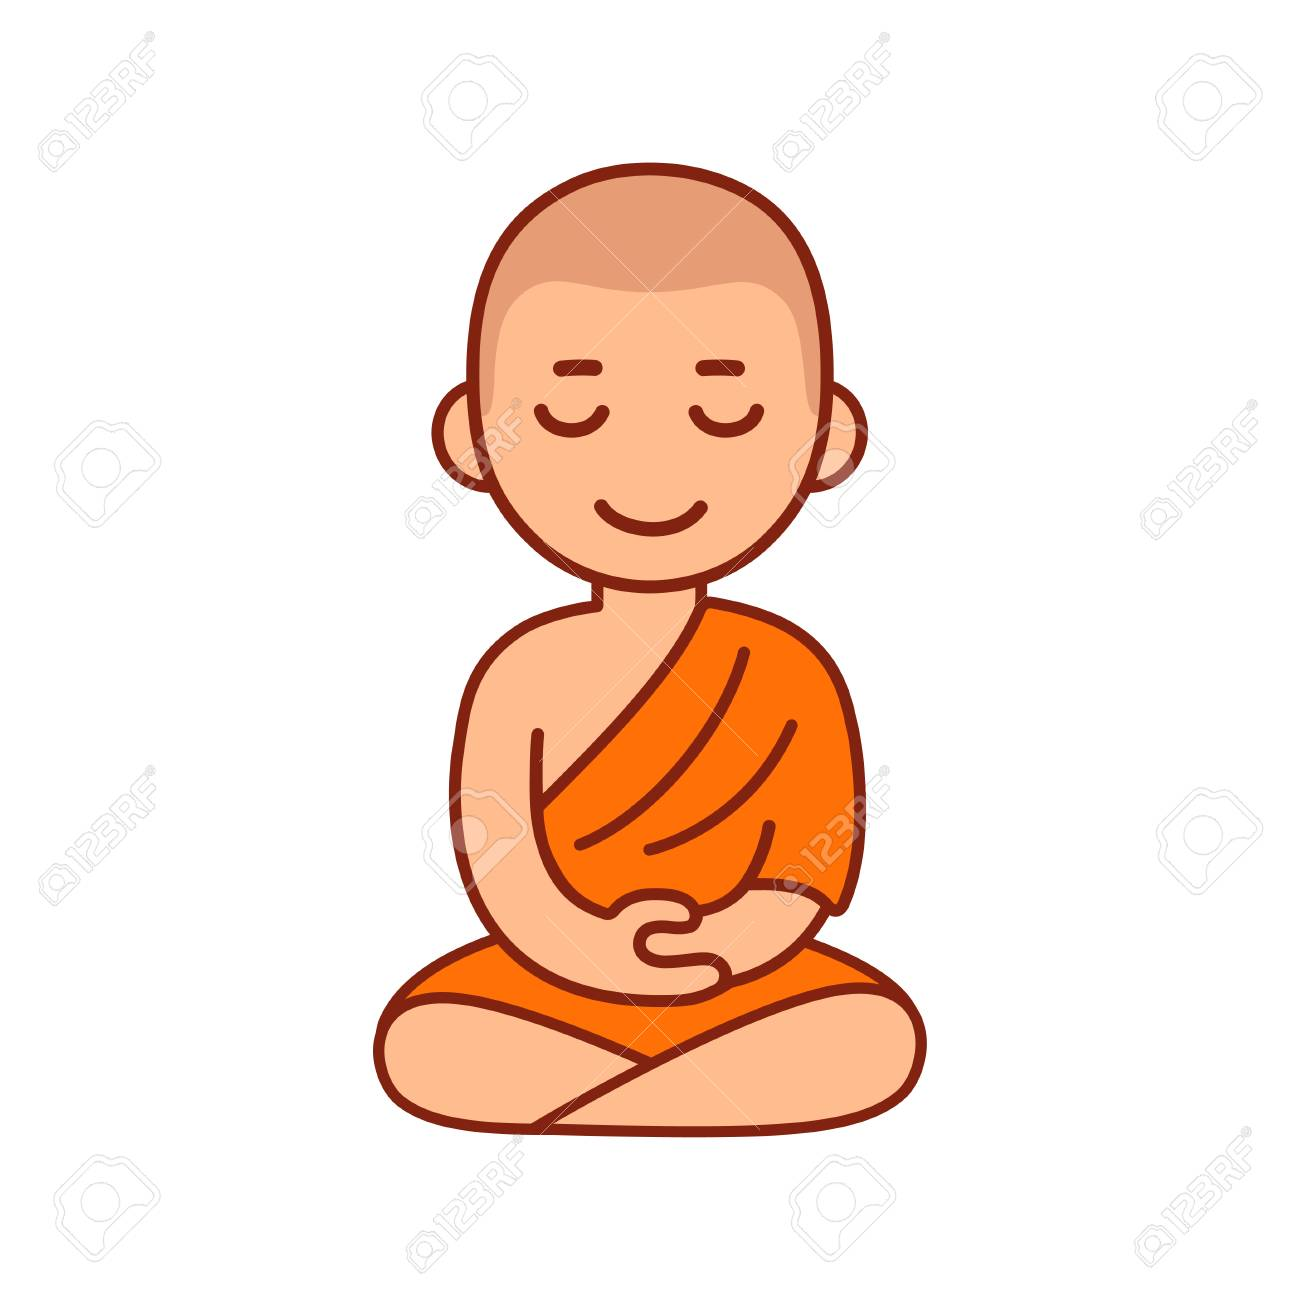 Buddhist Monk In Orange Robes Sitting In Meditation Cute Cartoon